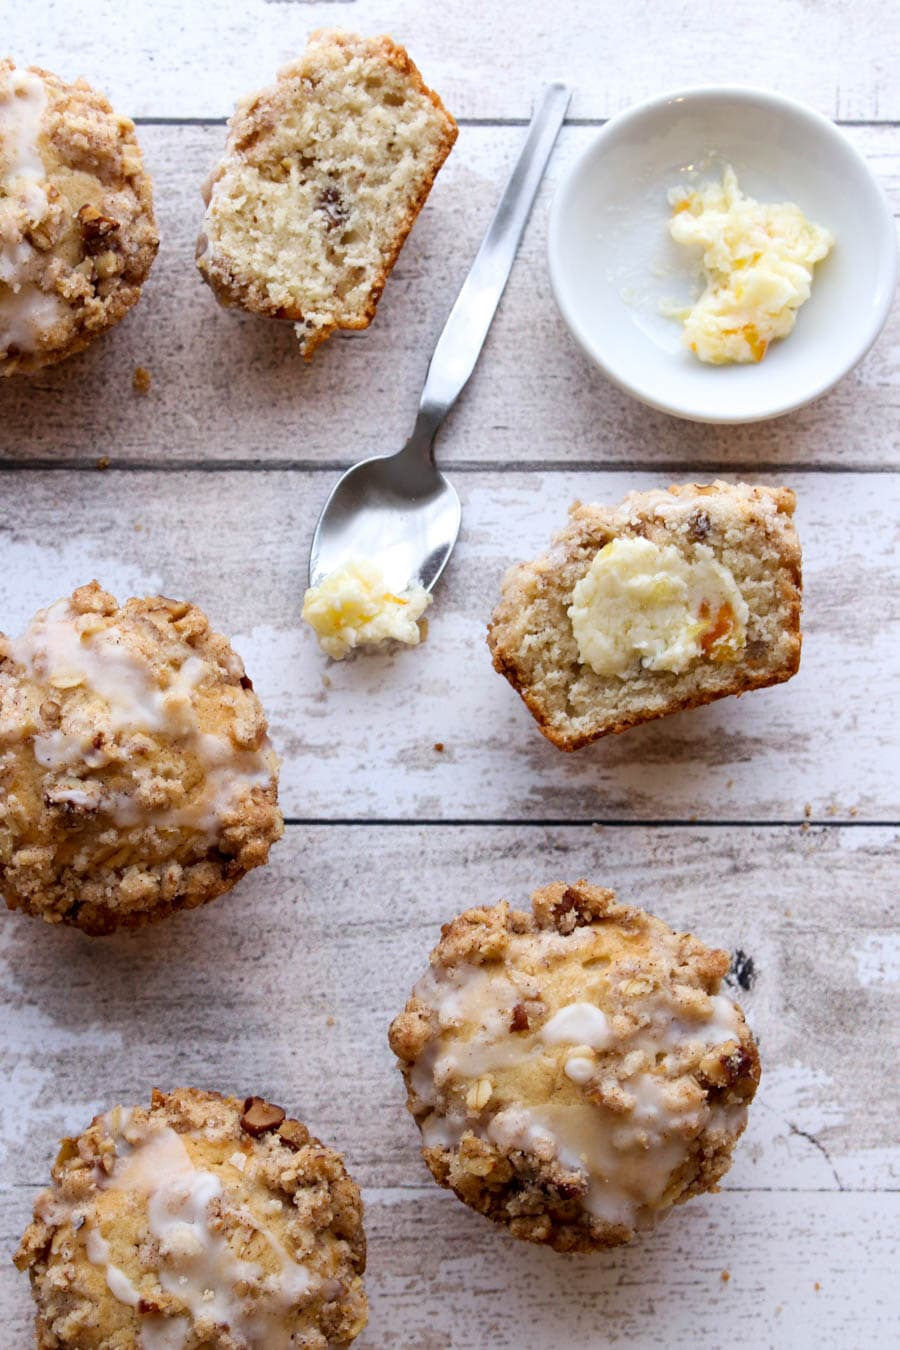 Buttered muffin with a spoon of butter